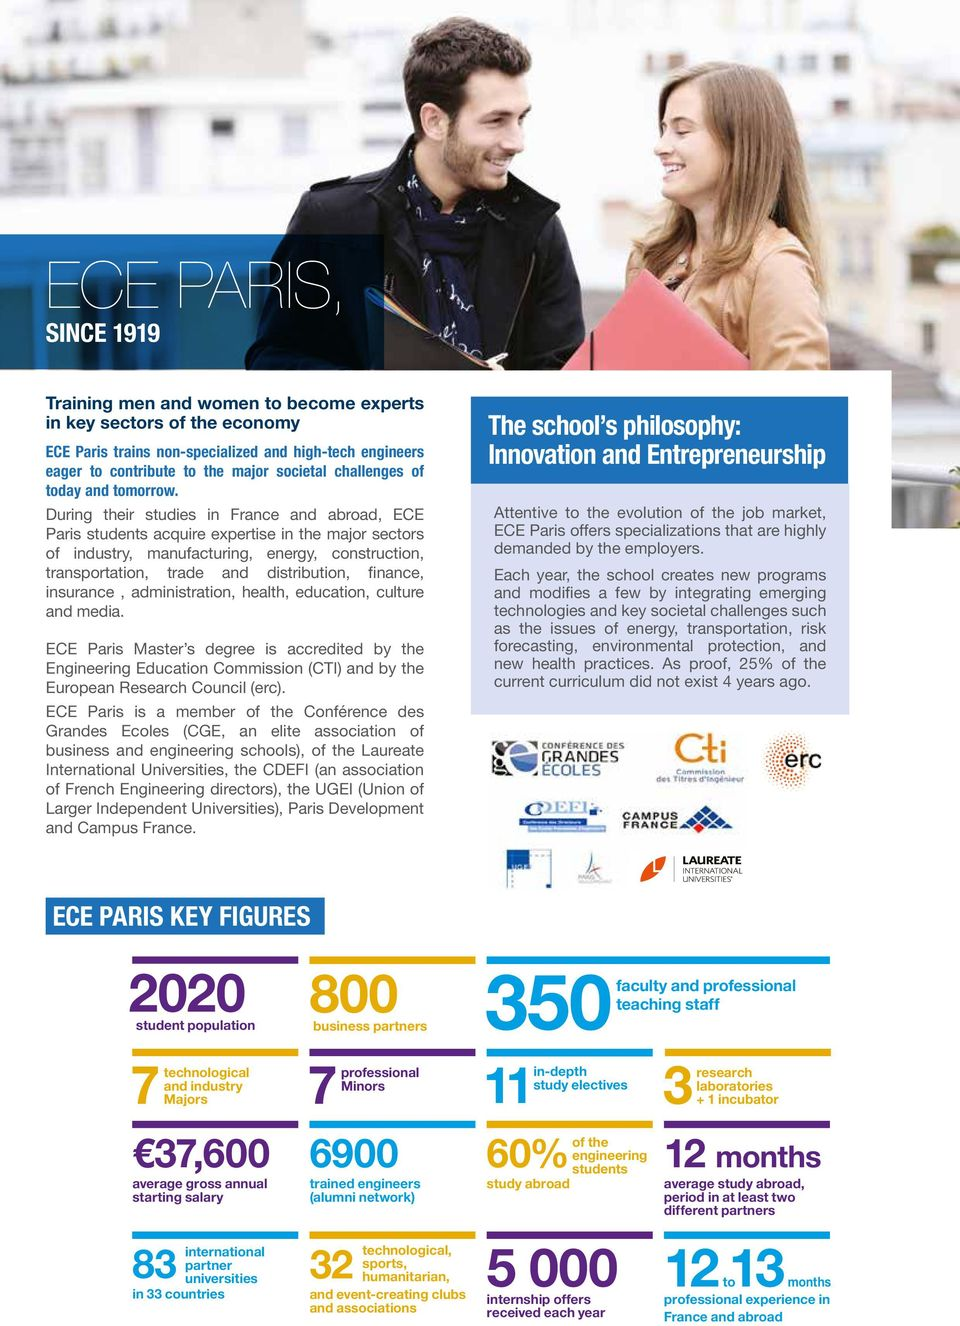 During their studies in France and abroad, ECE Paris students acquire expertise in the major sectors of industry, manufacturing, energy, construction, transportation, trade and distribution, finance,